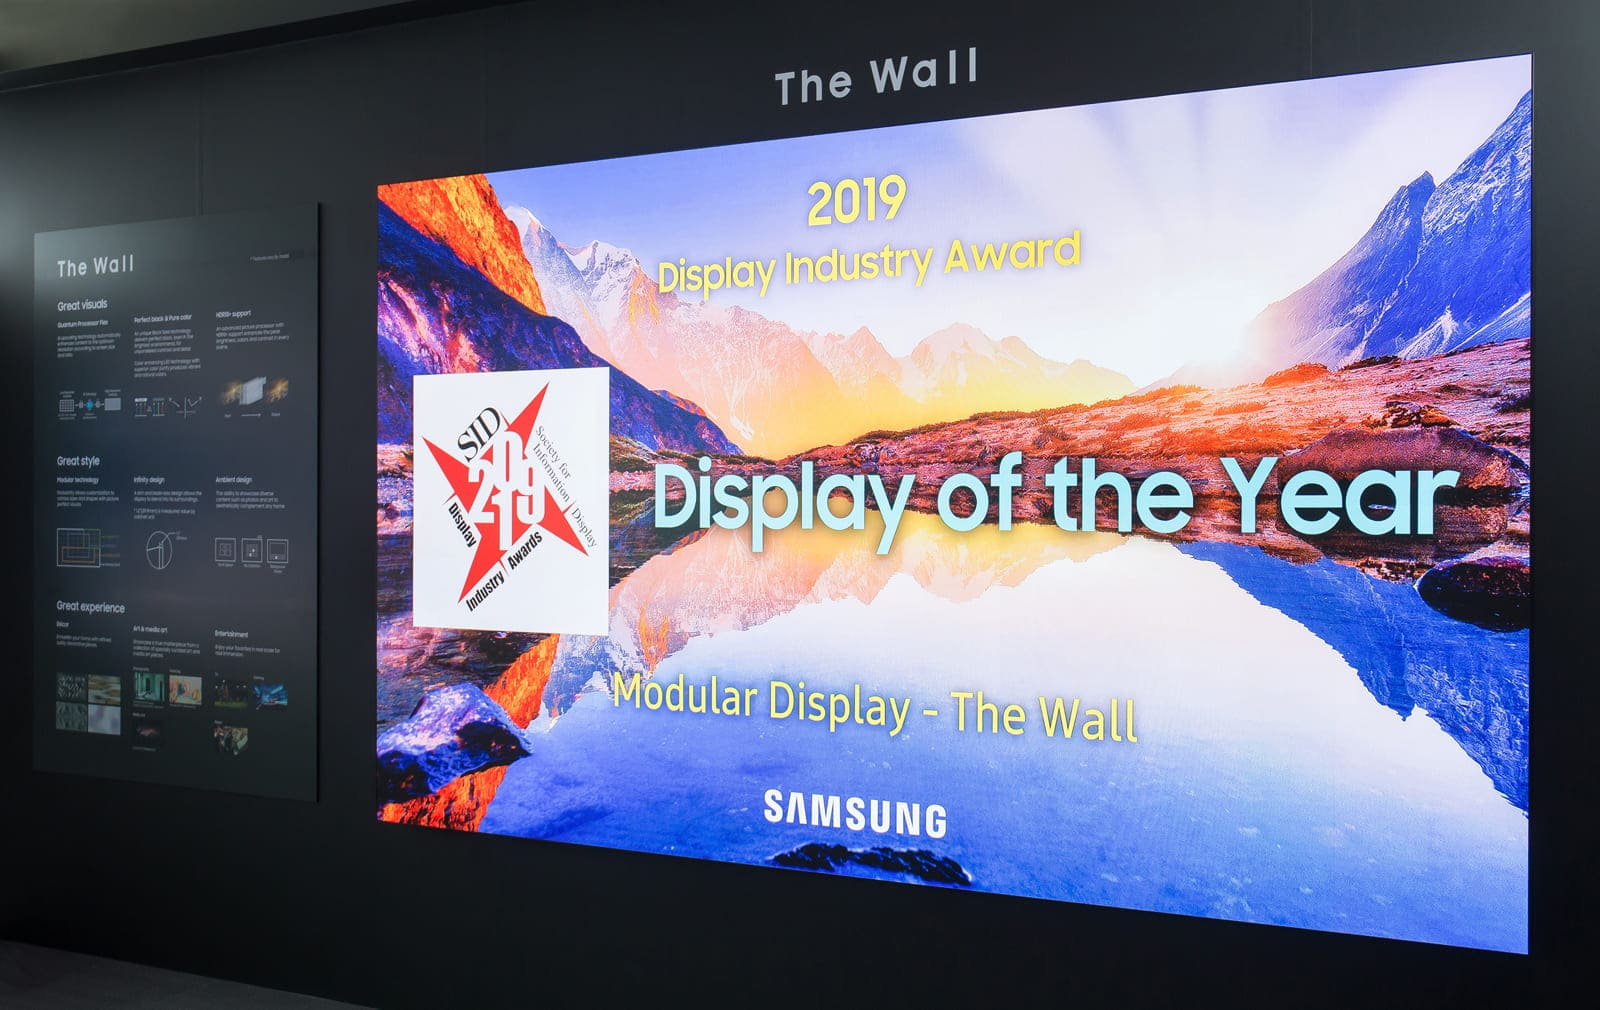 The_Wall_SID_Display_of_the_year_5